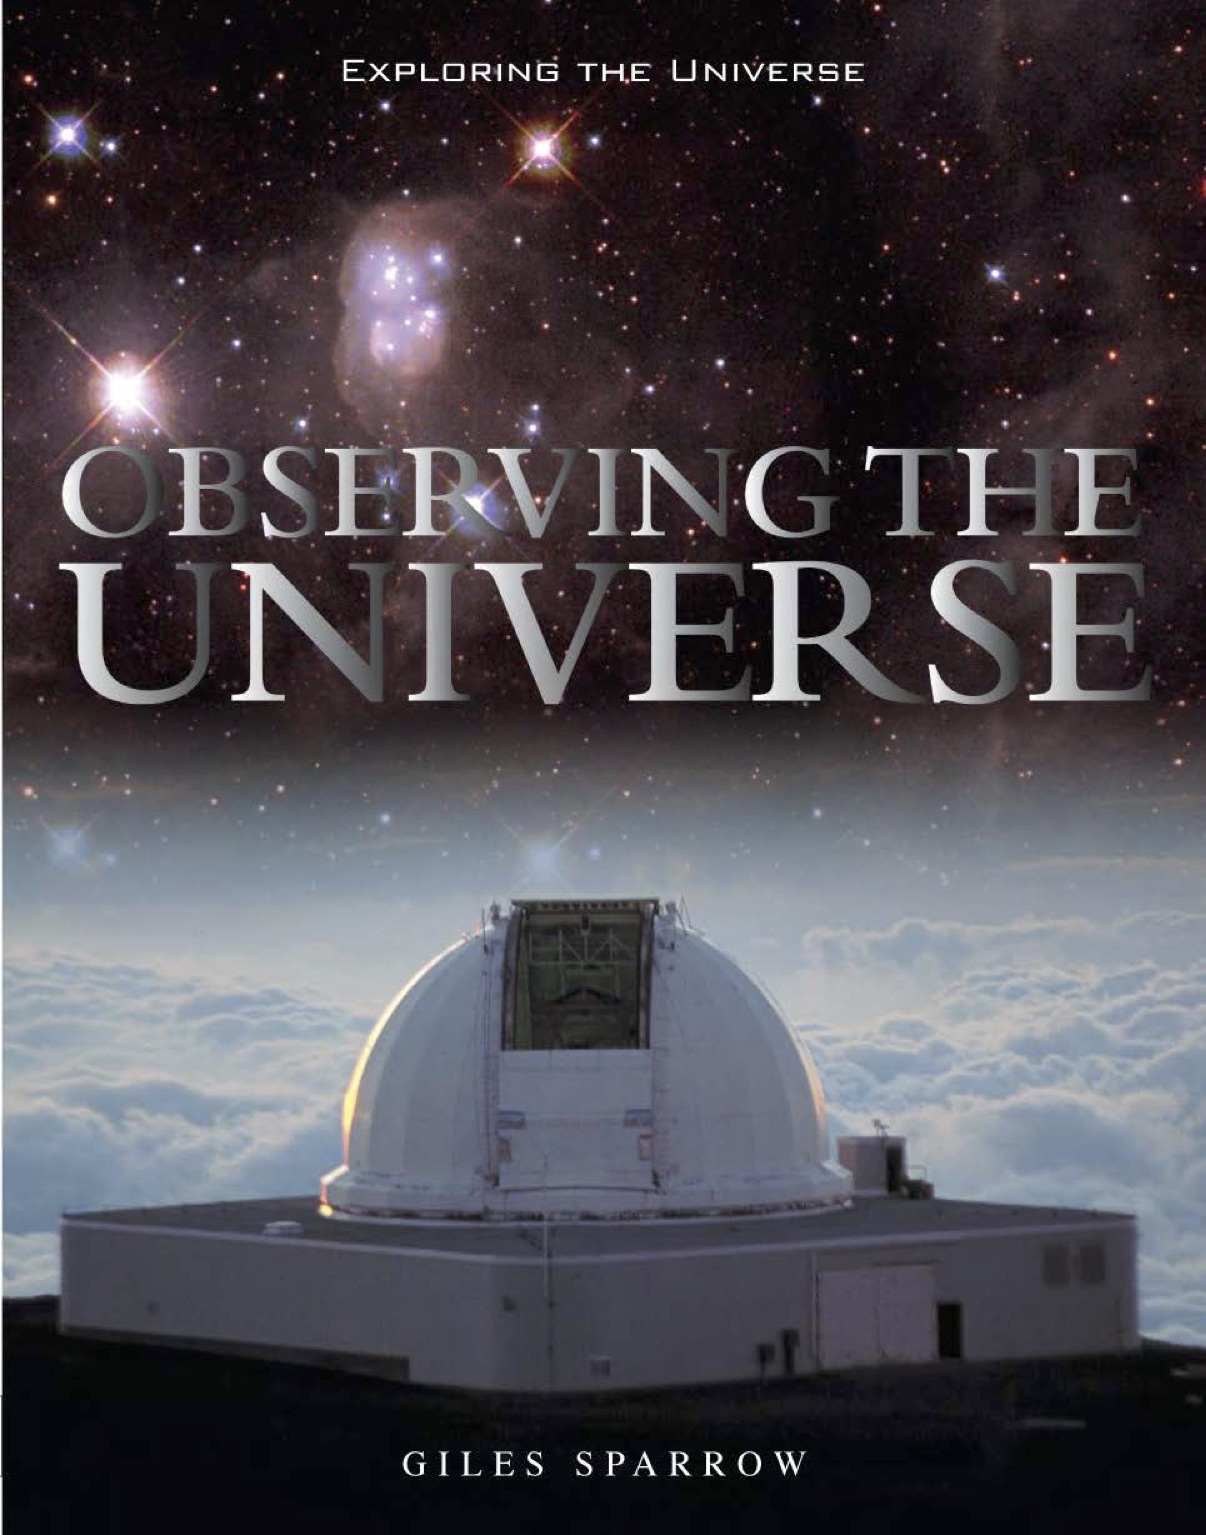 Exploring the Universe: Observing the Universe